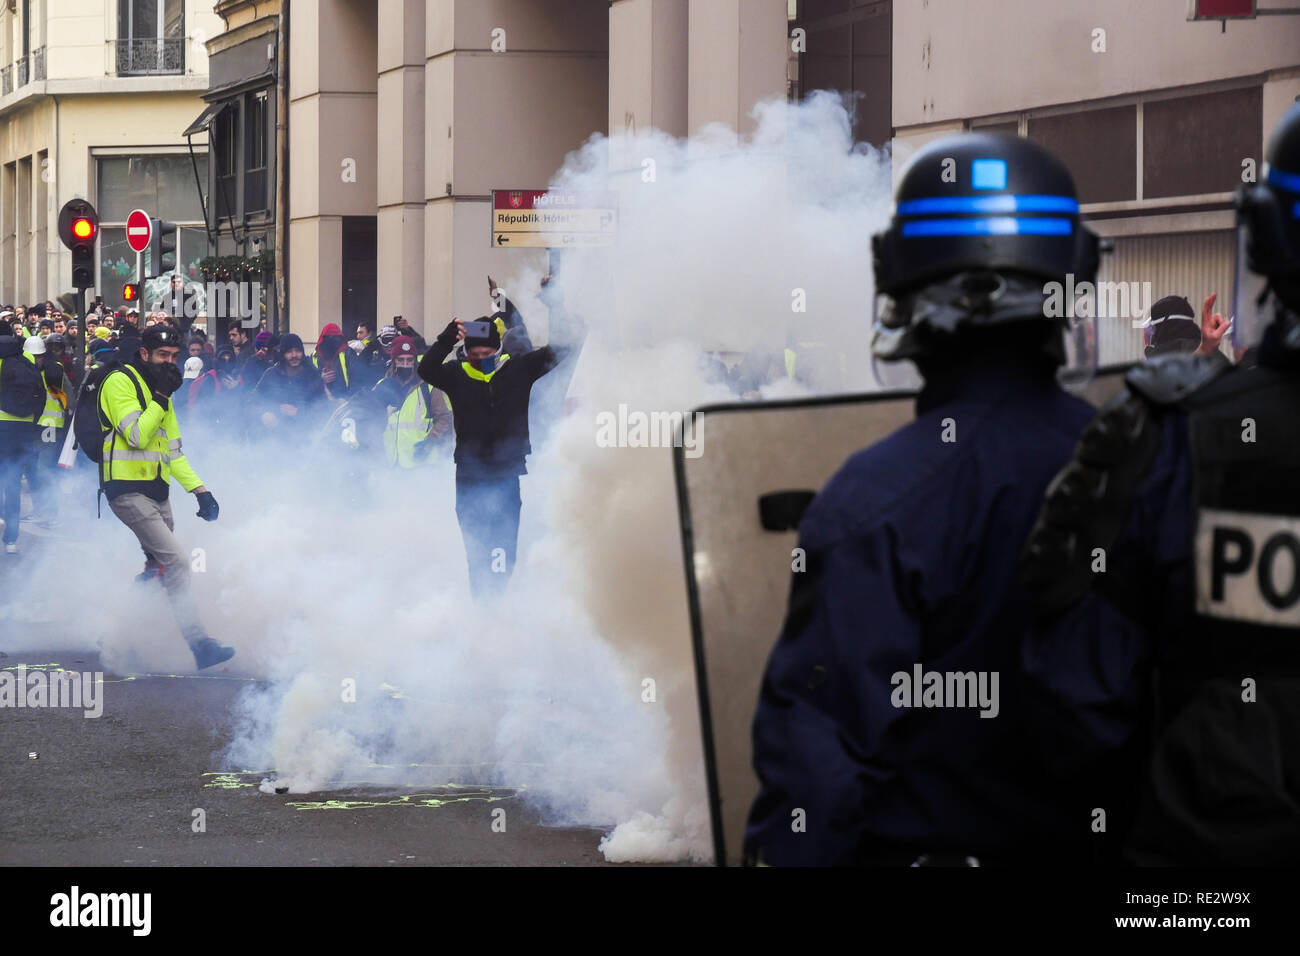 Lyon, France, January 19th 2019: Riot police officers use tear gas cannisters to push back Yellow jackets as they take part to the 10th day of protest against french goverment reform projetct. in Lyon (Central-Eastern France) in january 19, 2019  Credit Photo: Serge Mouraret/Alamy Live News - Stock Image